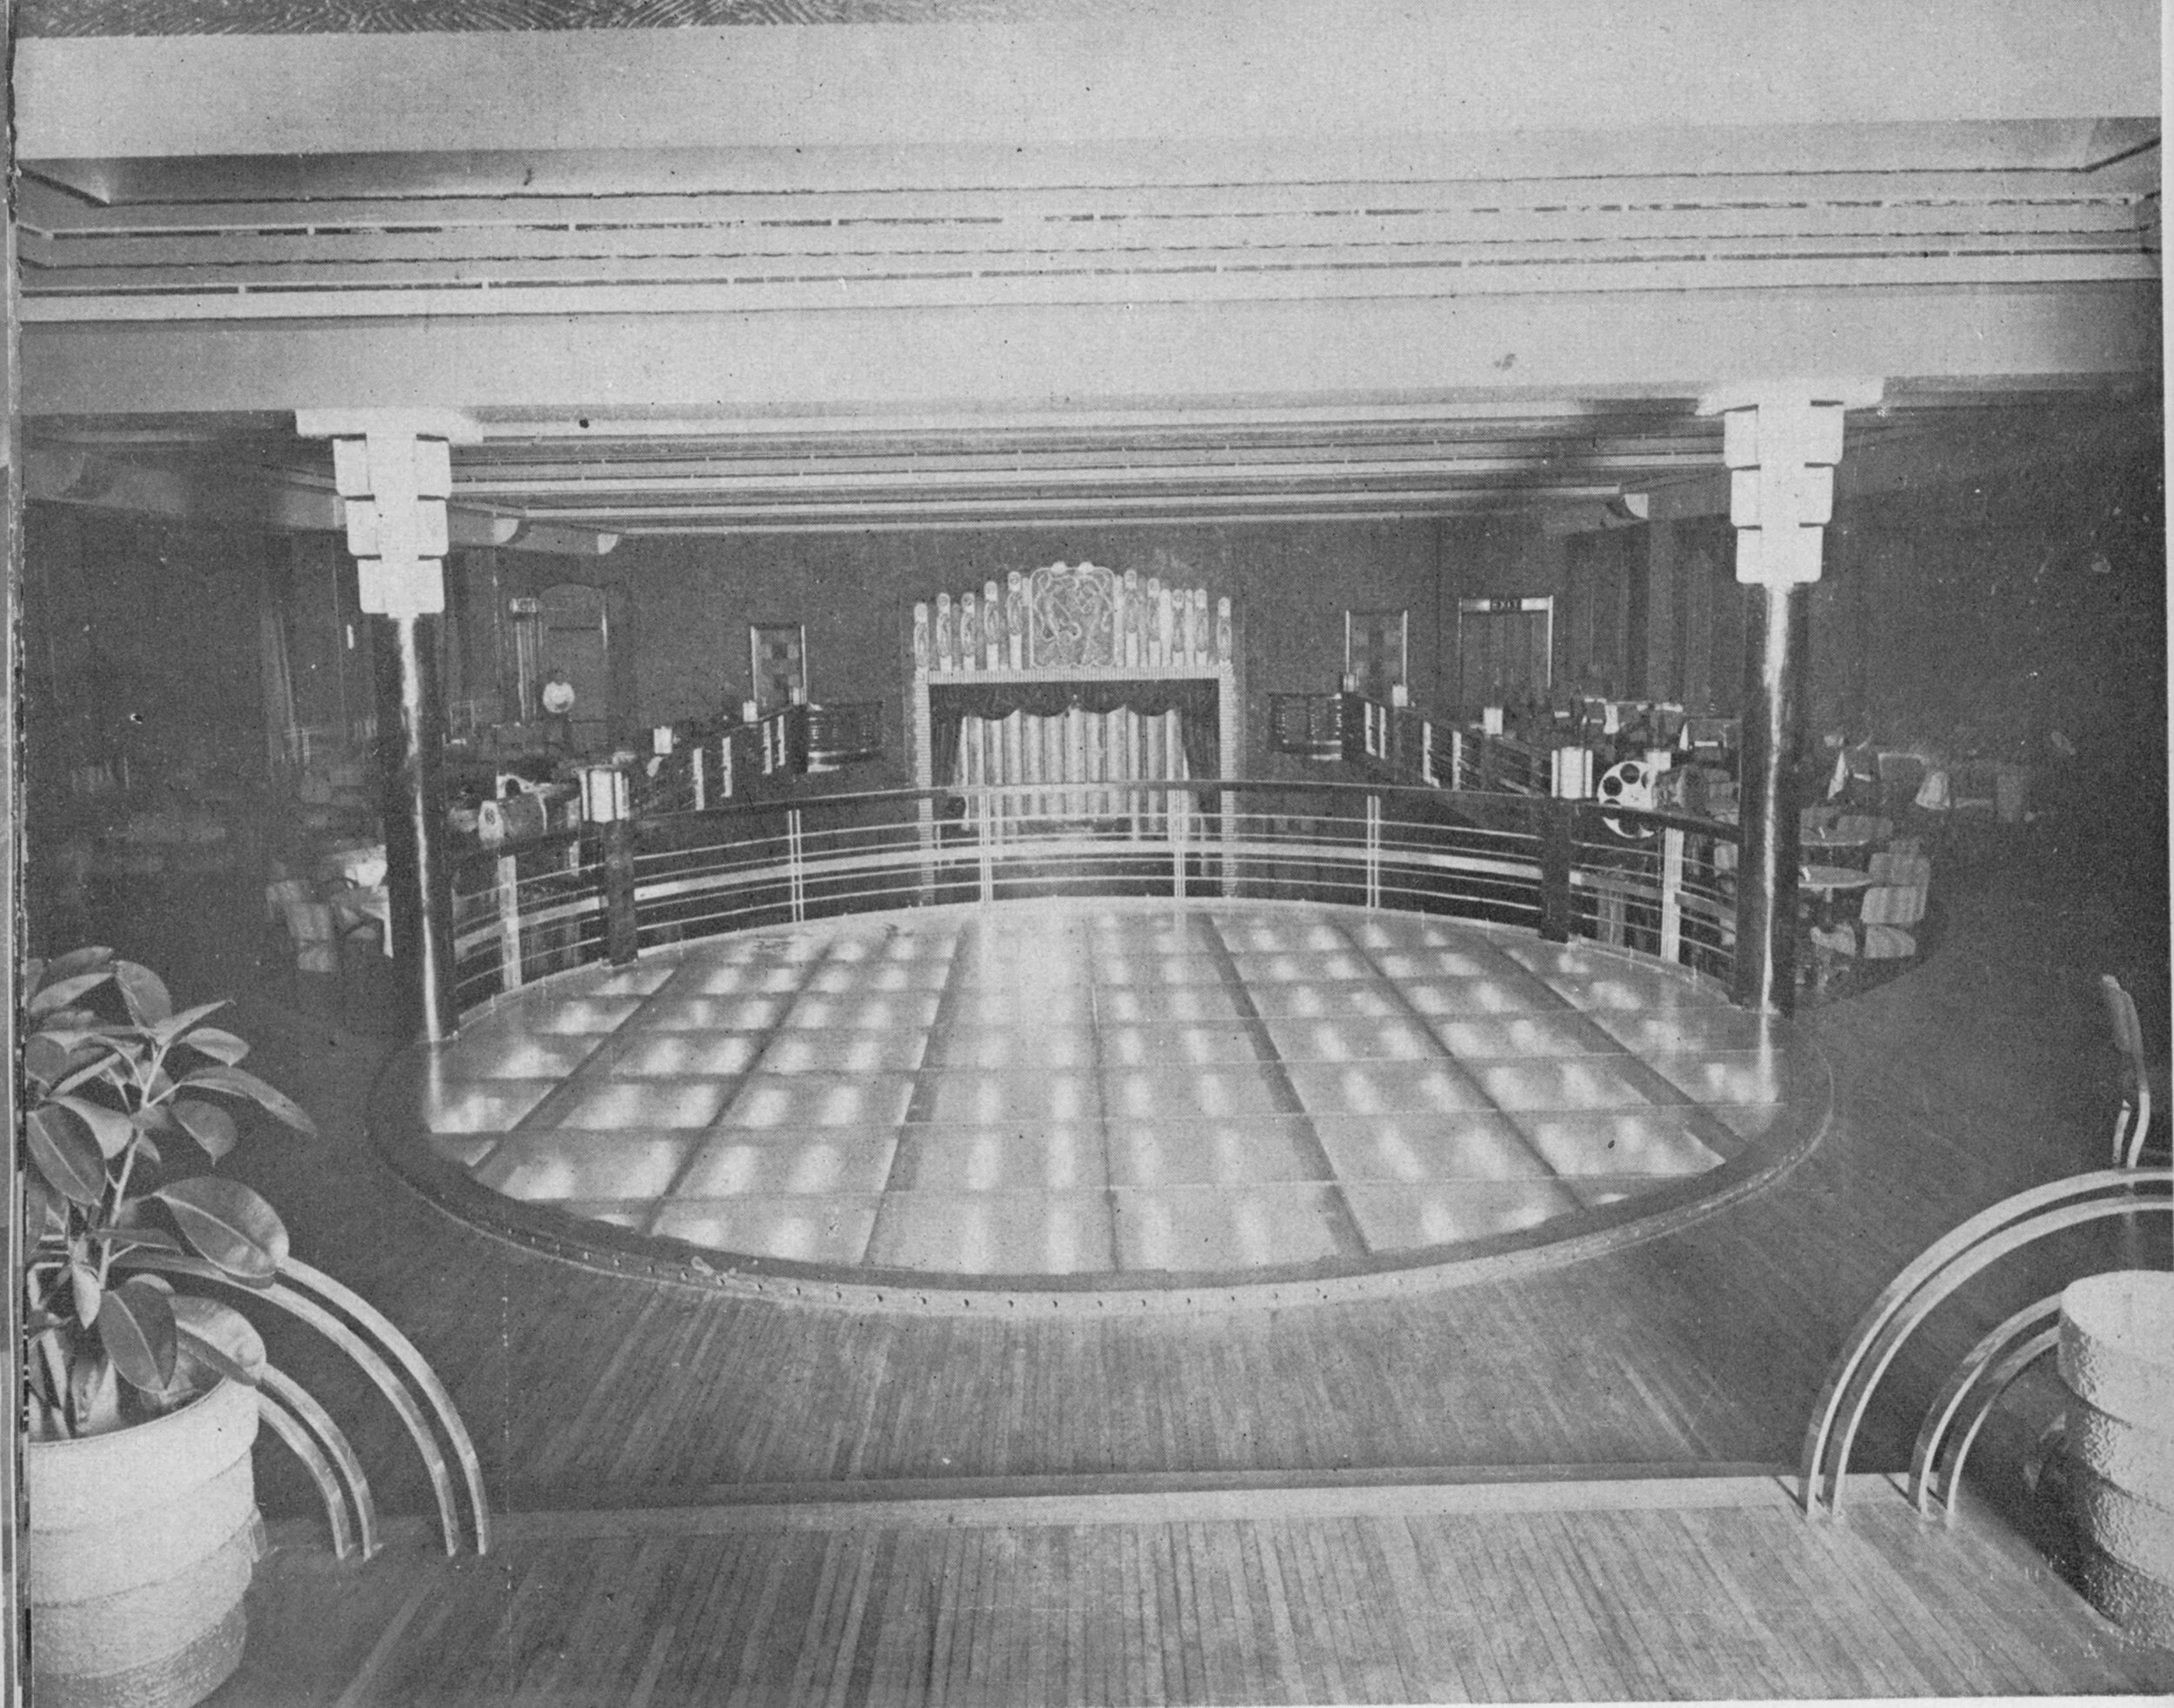 The upper dance floor was built on plate glass with colored lights underneath.